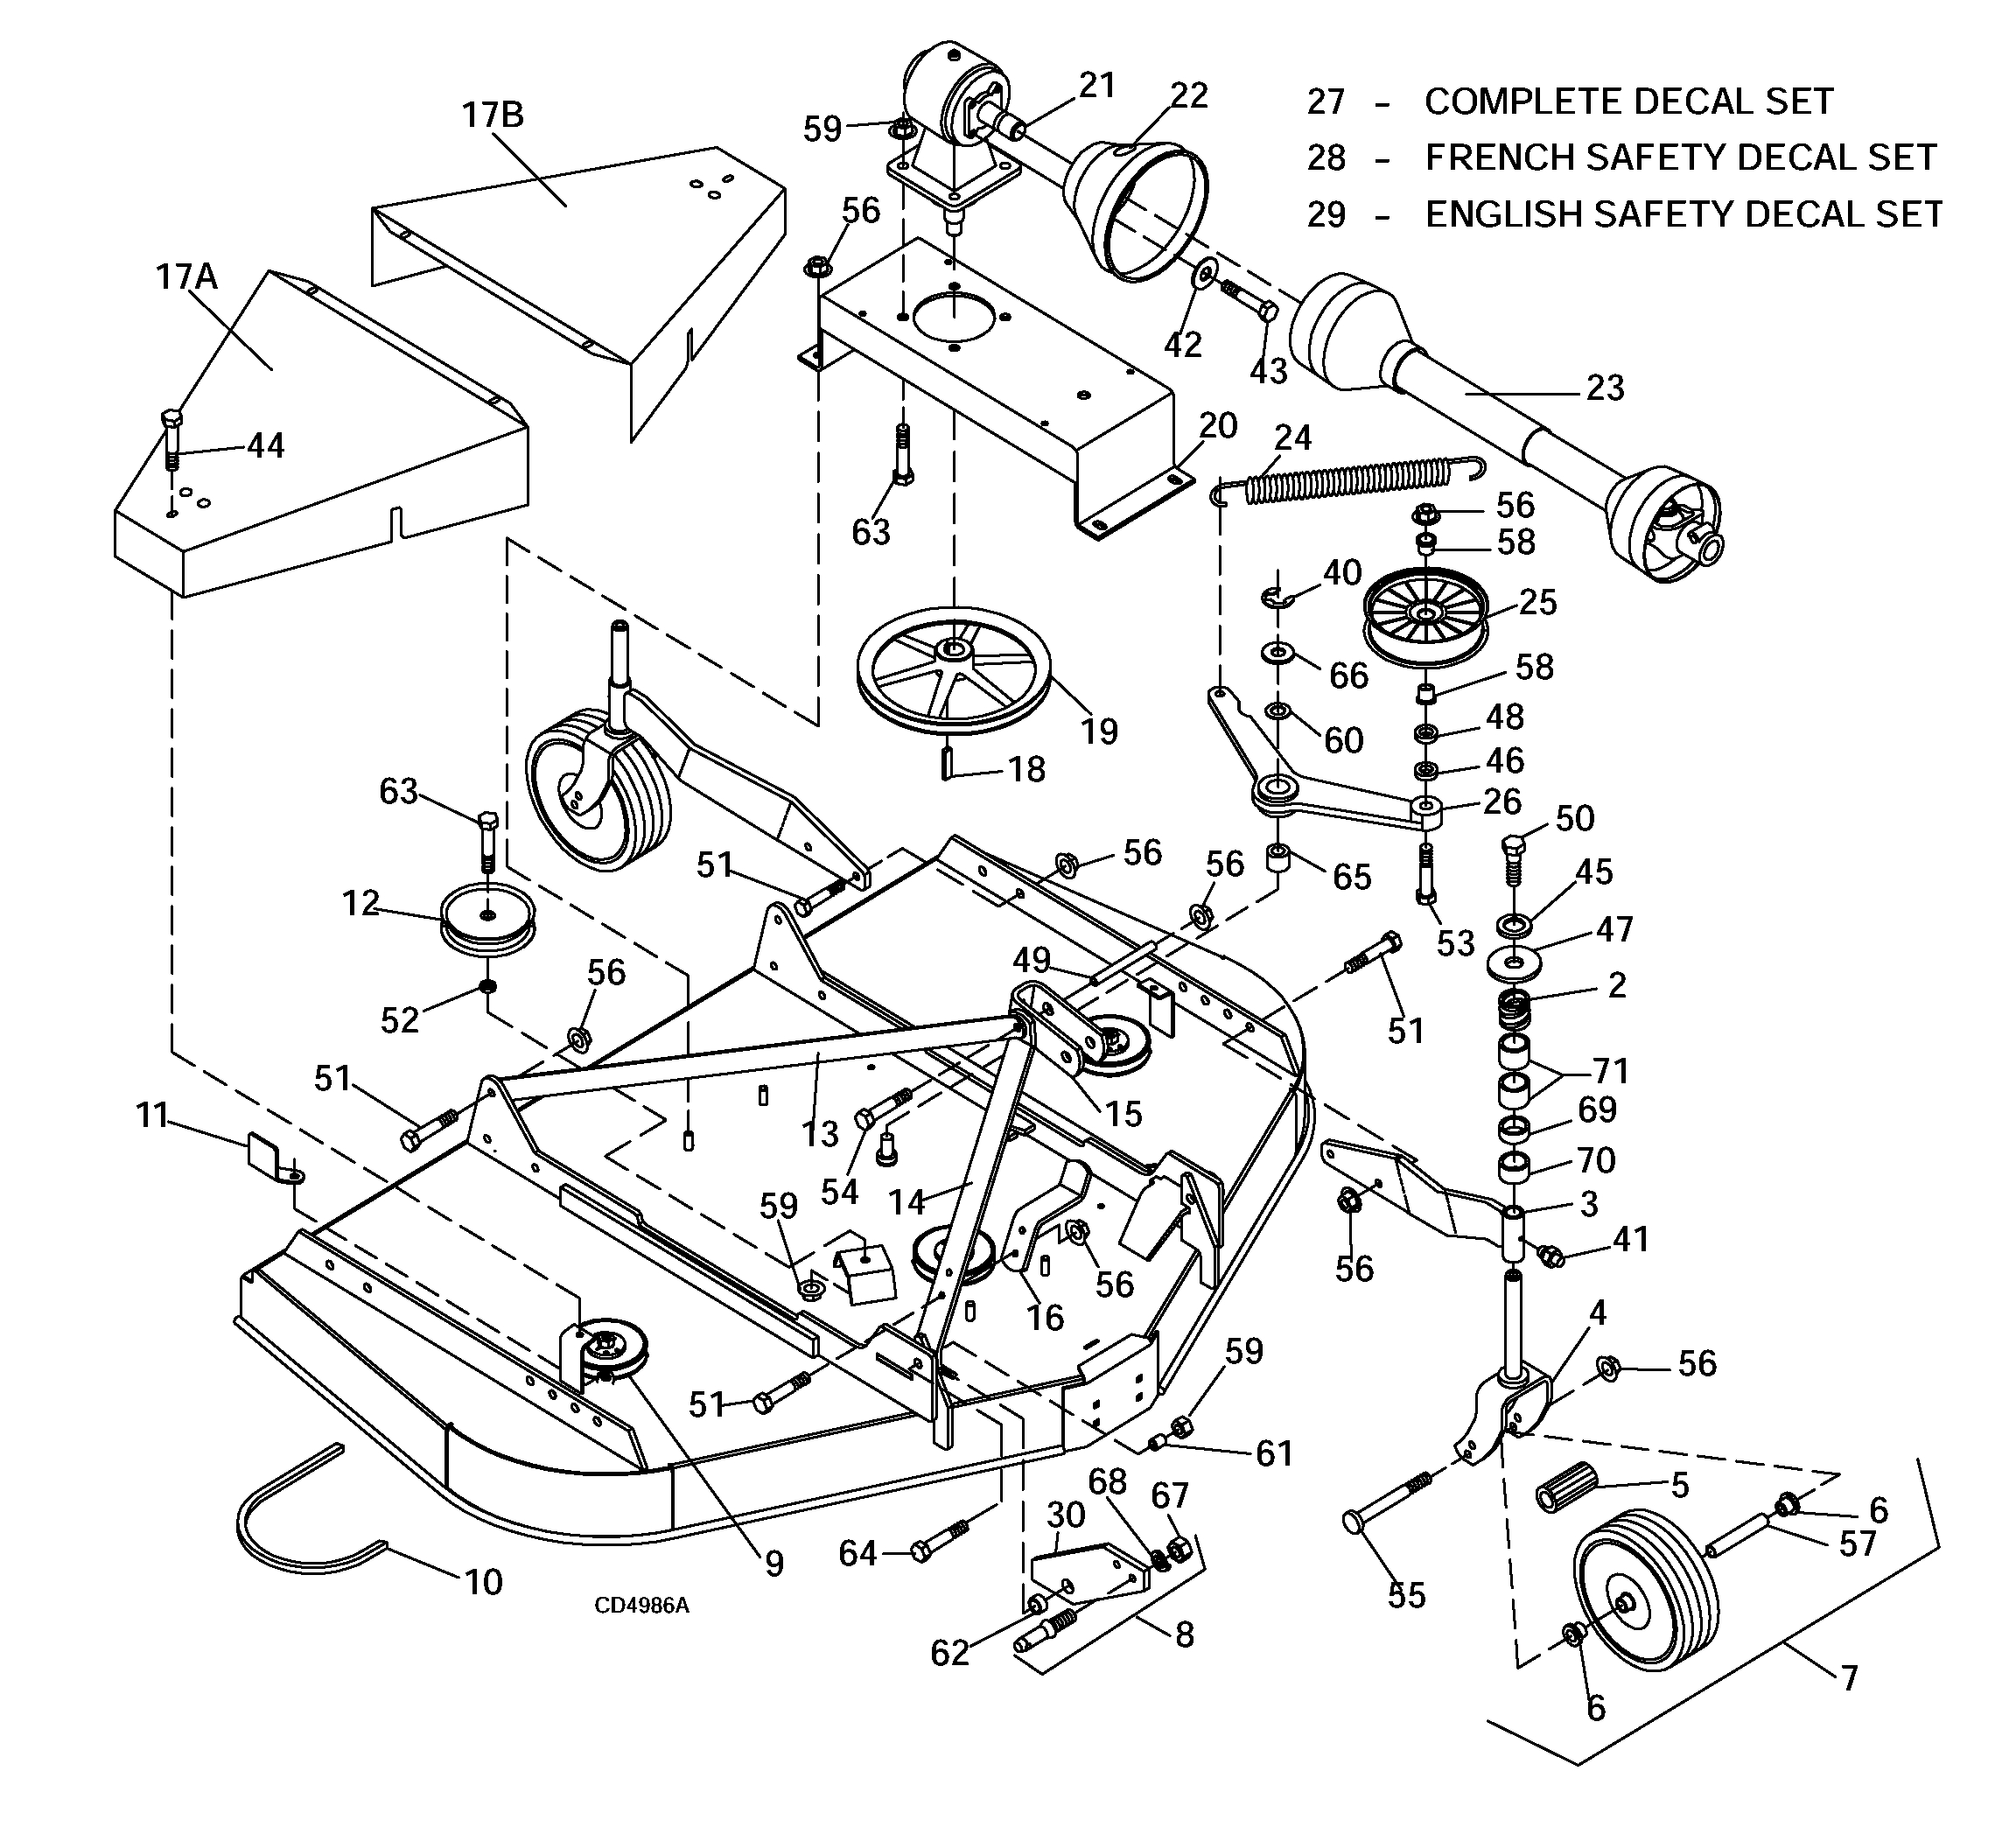 Woods Mower Parts Diagrams Woods Rd6000 Sn 688691 After Rearmount Finish Mower Main Frame